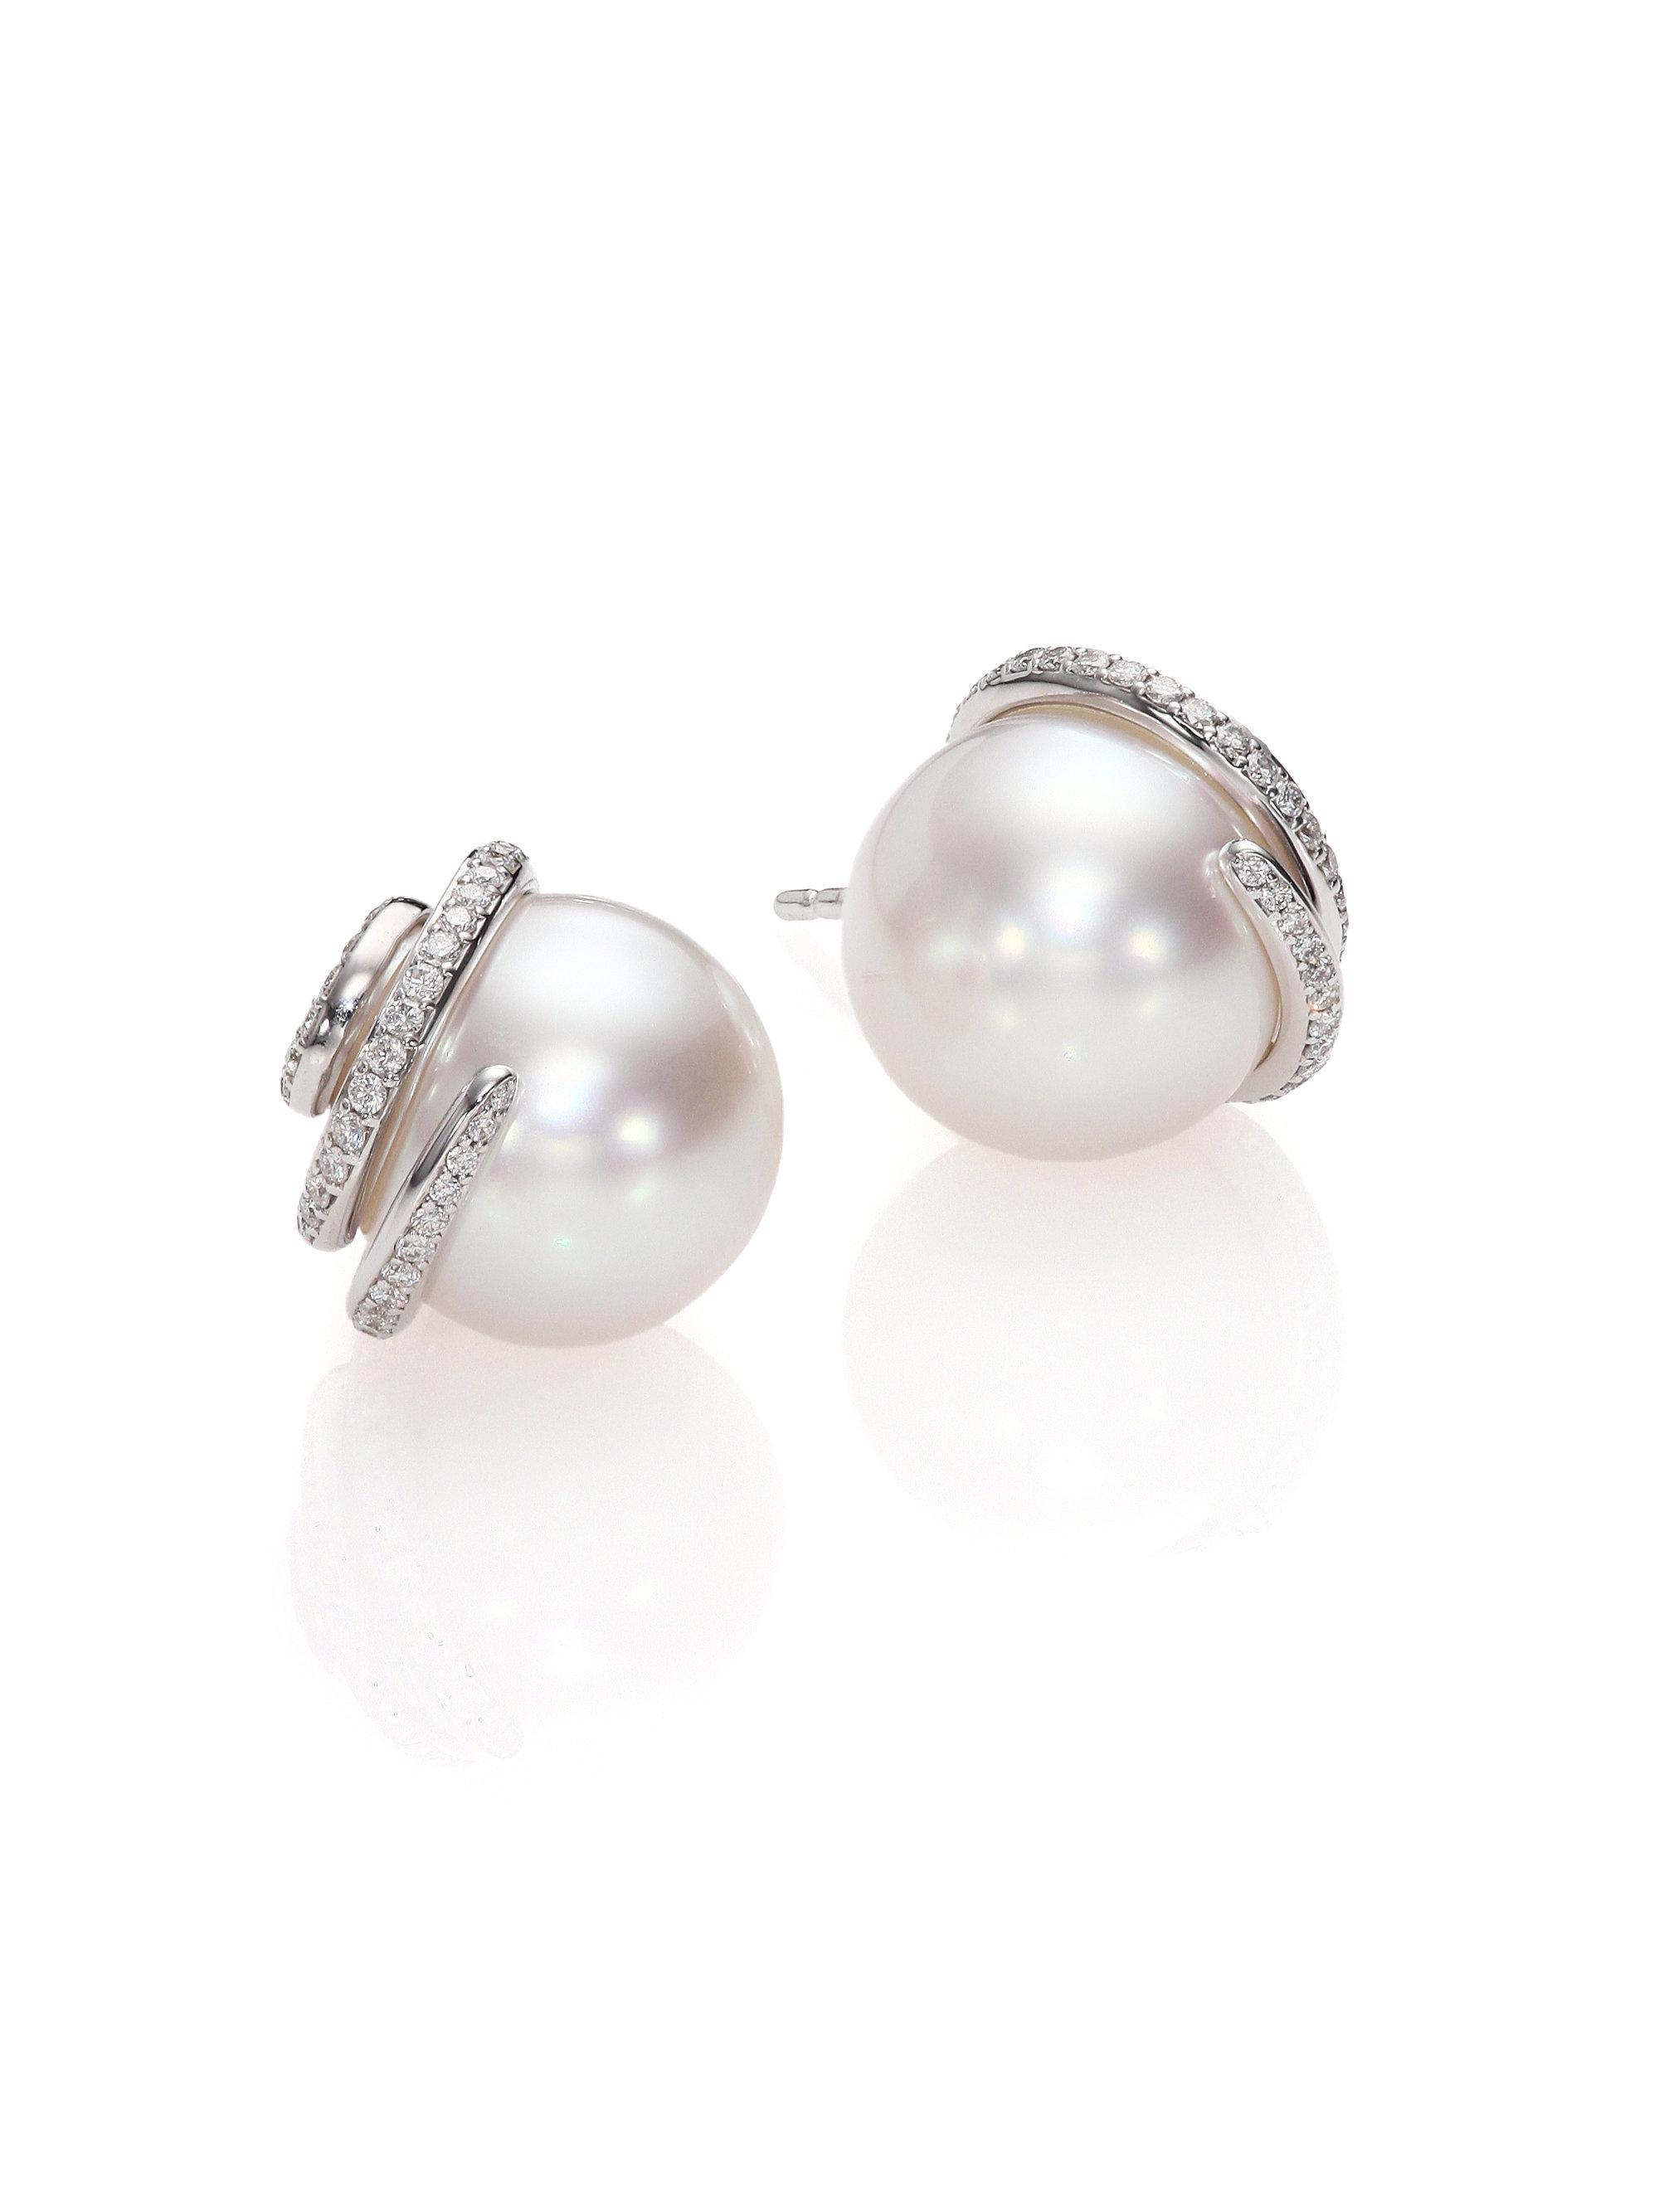 quality aaa earrings stud products silver whitestudswatch freshwater set jewellery in premium collections black pearl white